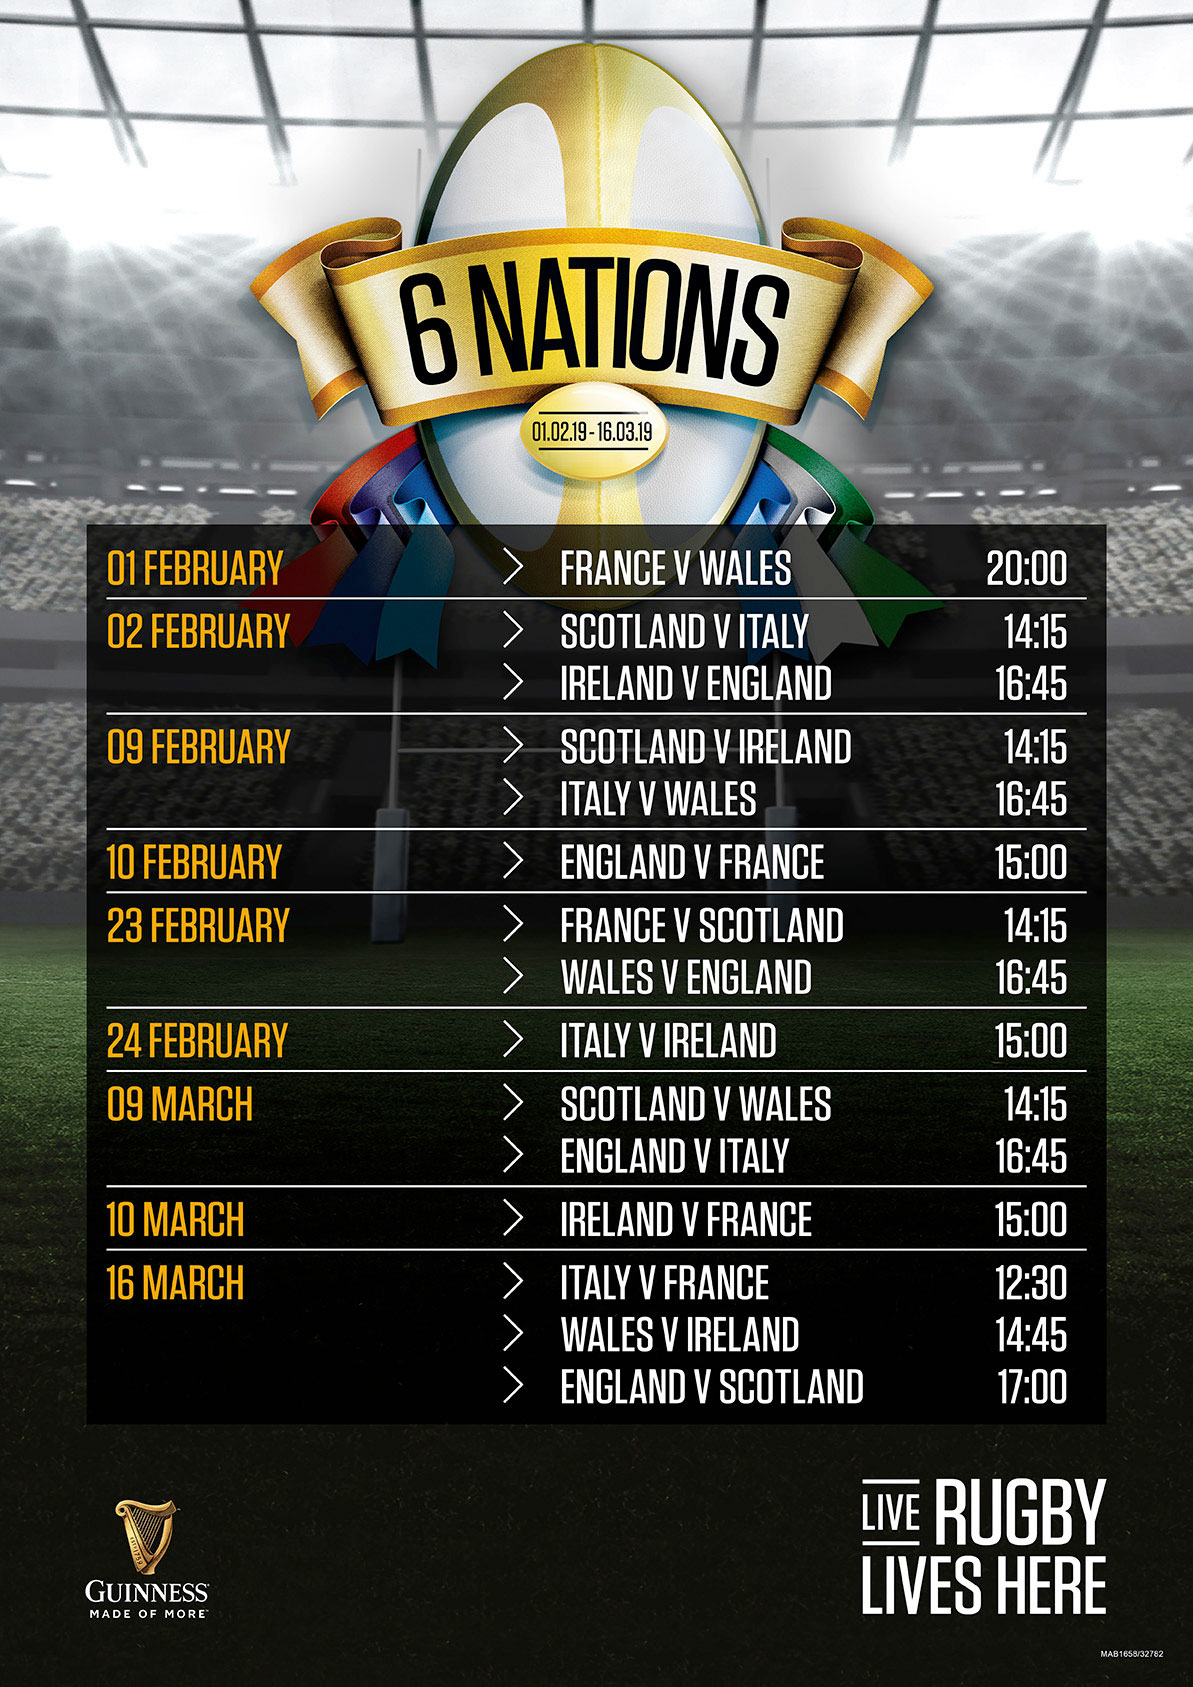 Six Nations Fixtures at Sizzling